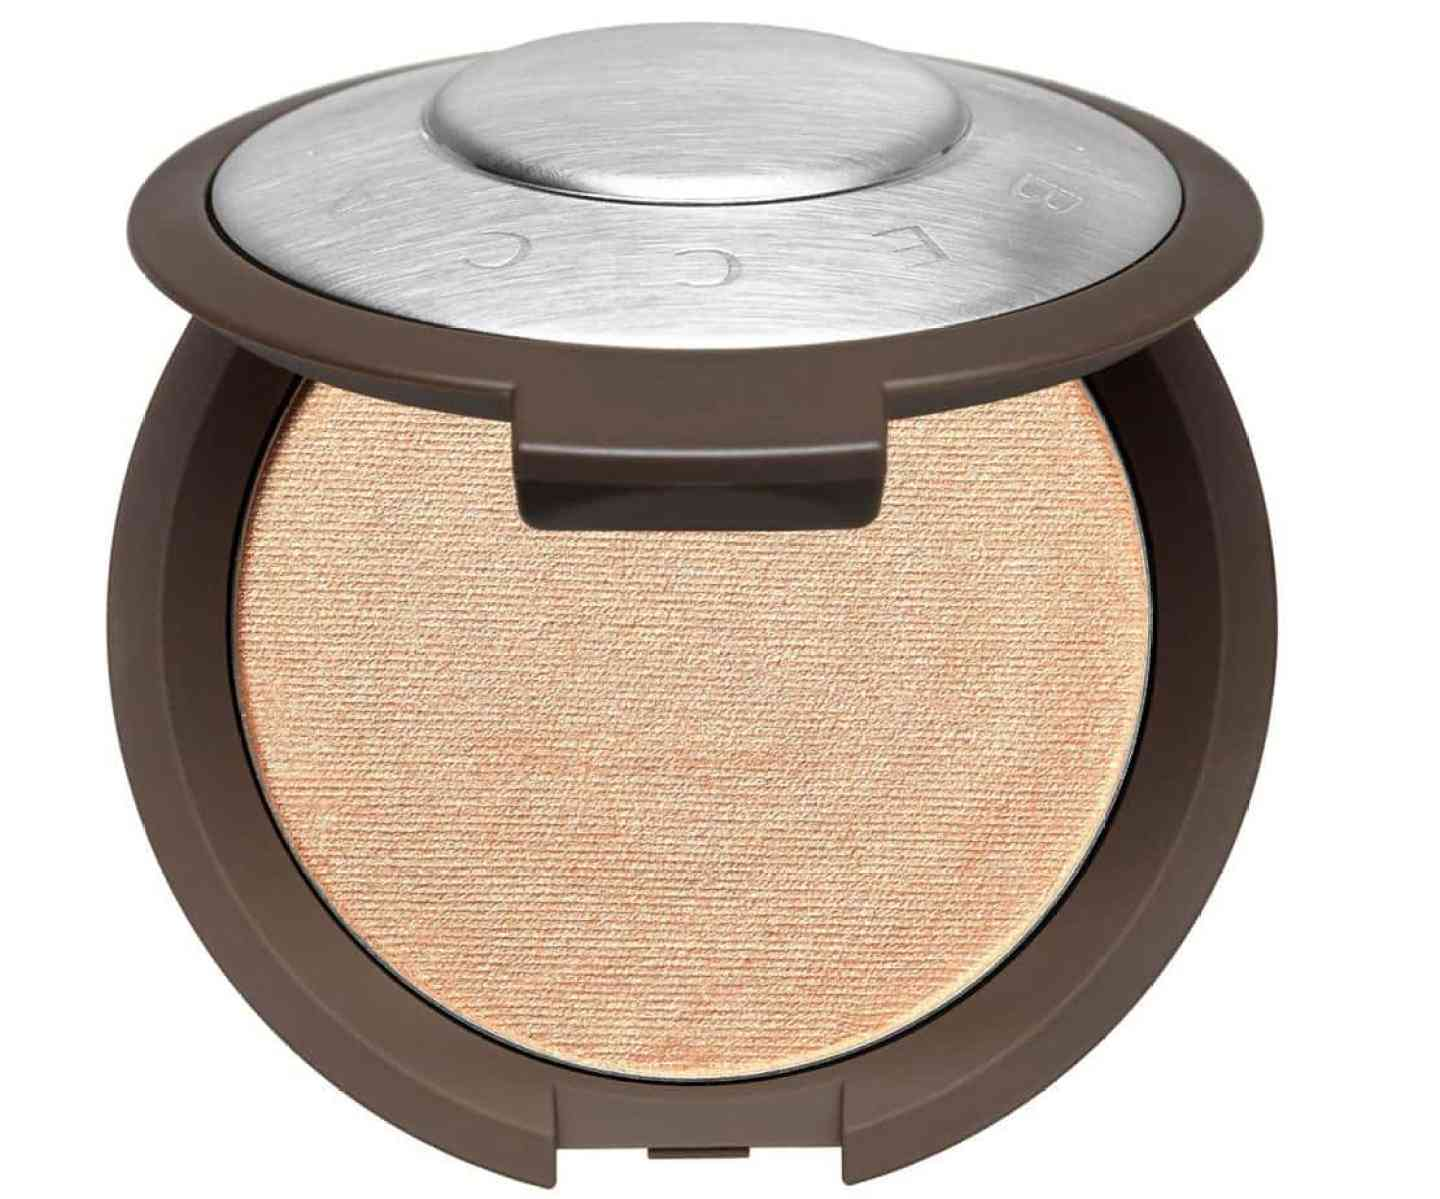 Becca Cosmetics Highlighter Champagne Pop